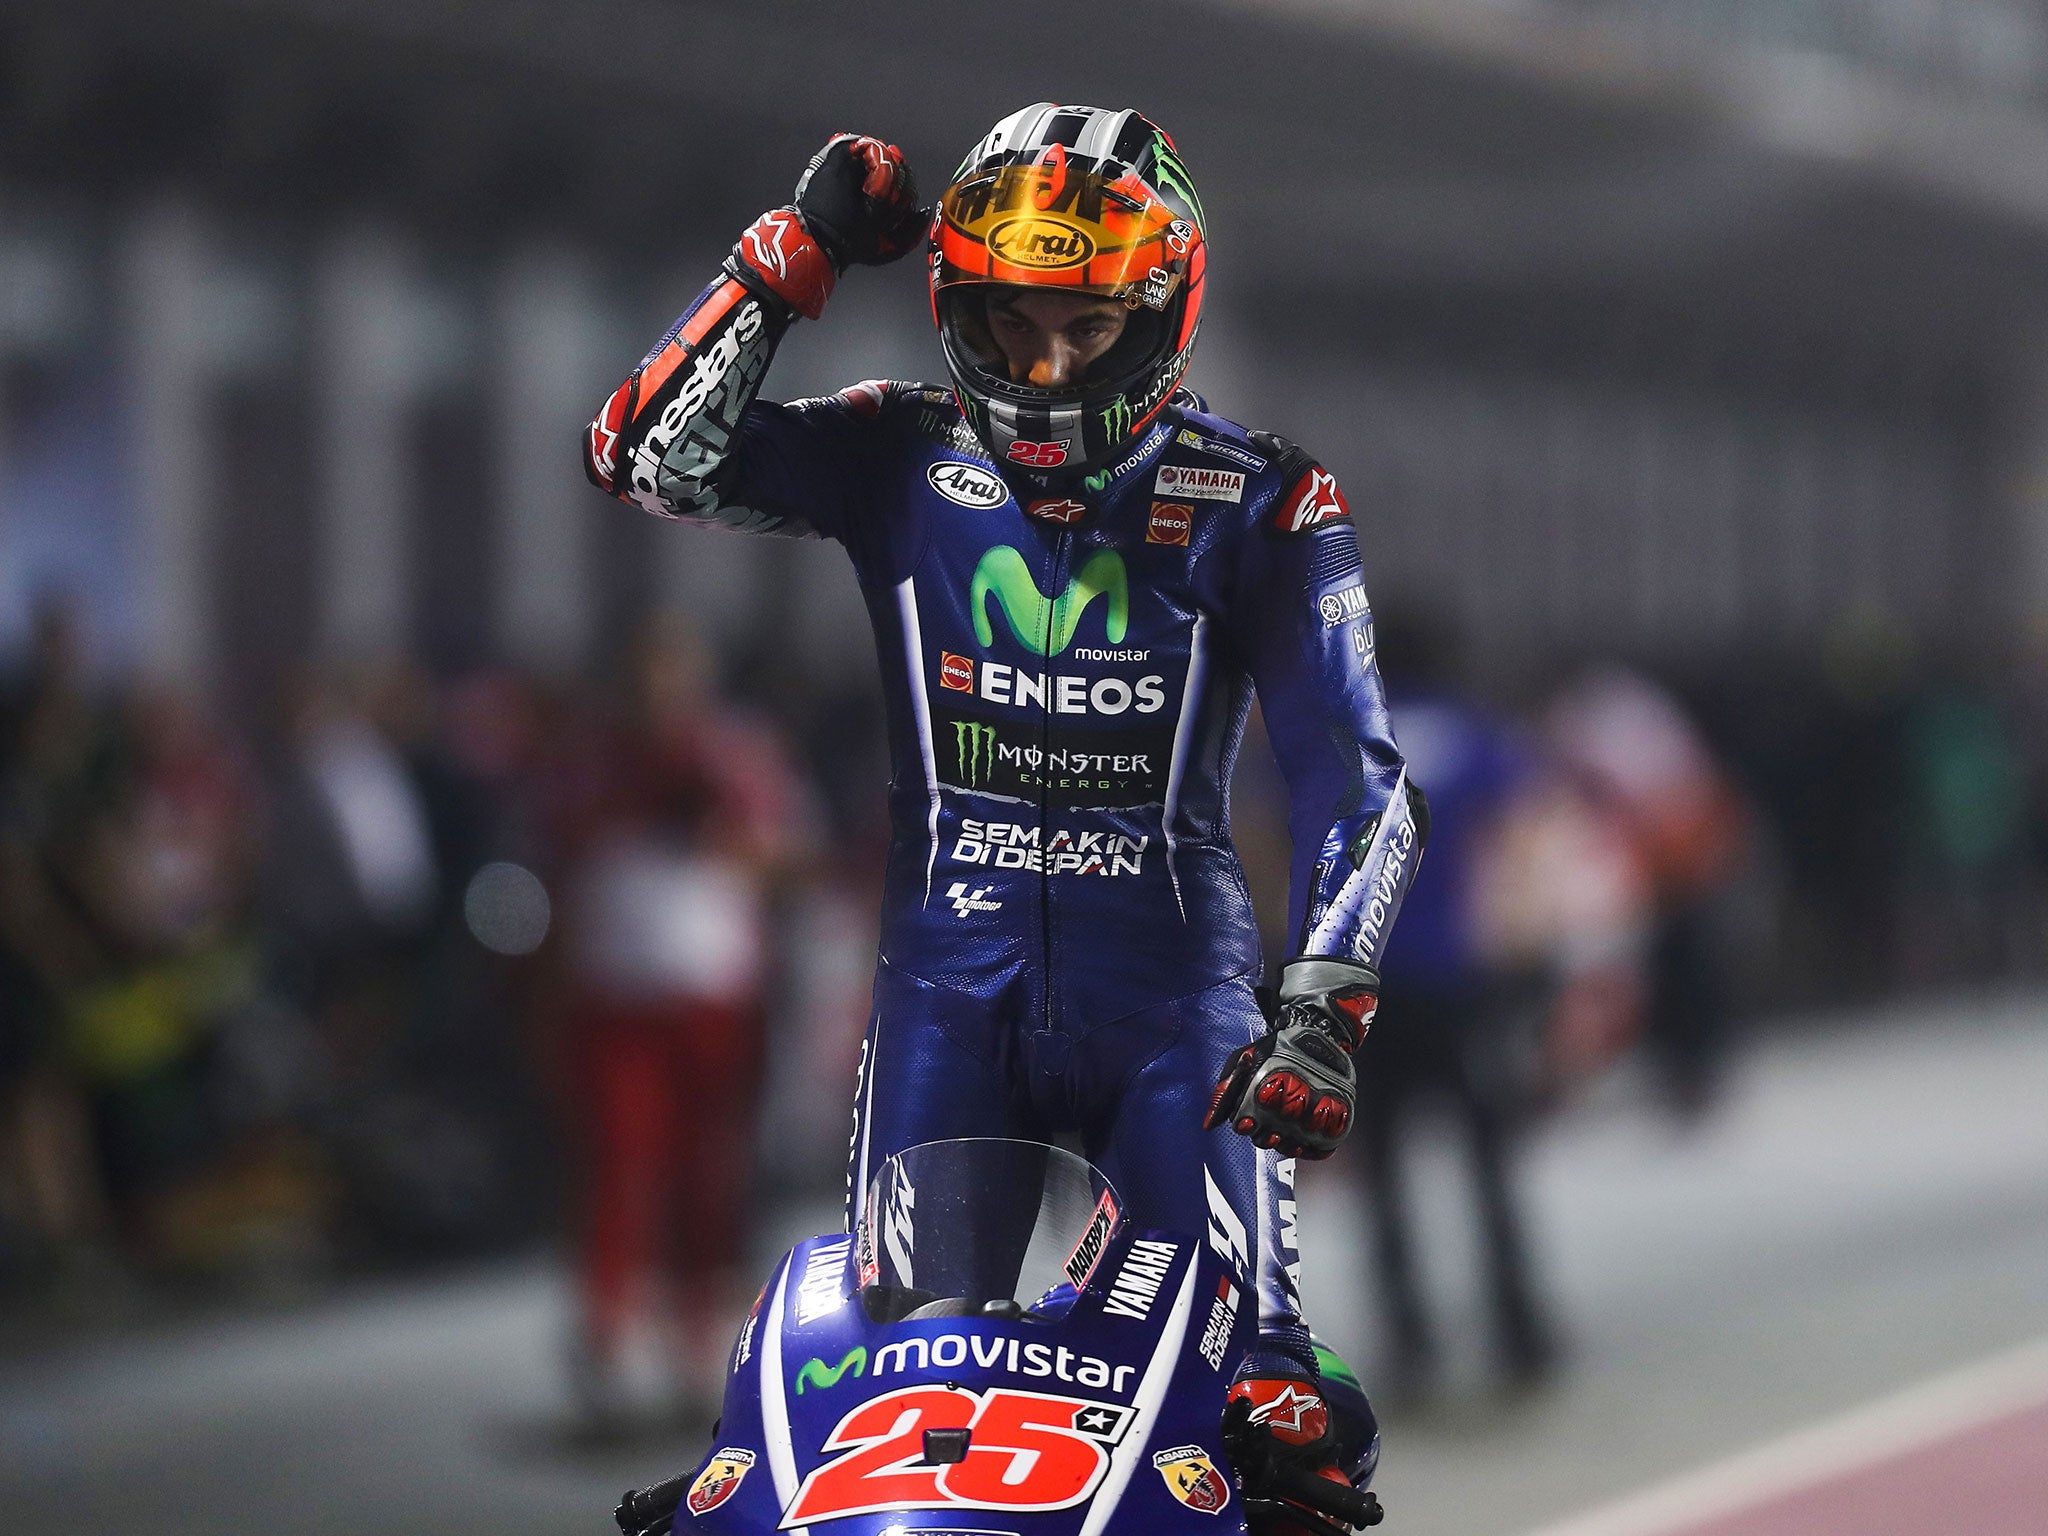 Maverick Vinales claims Qatar MotoGP victory in maiden outing with Yamaha as Valentino Rossi ...